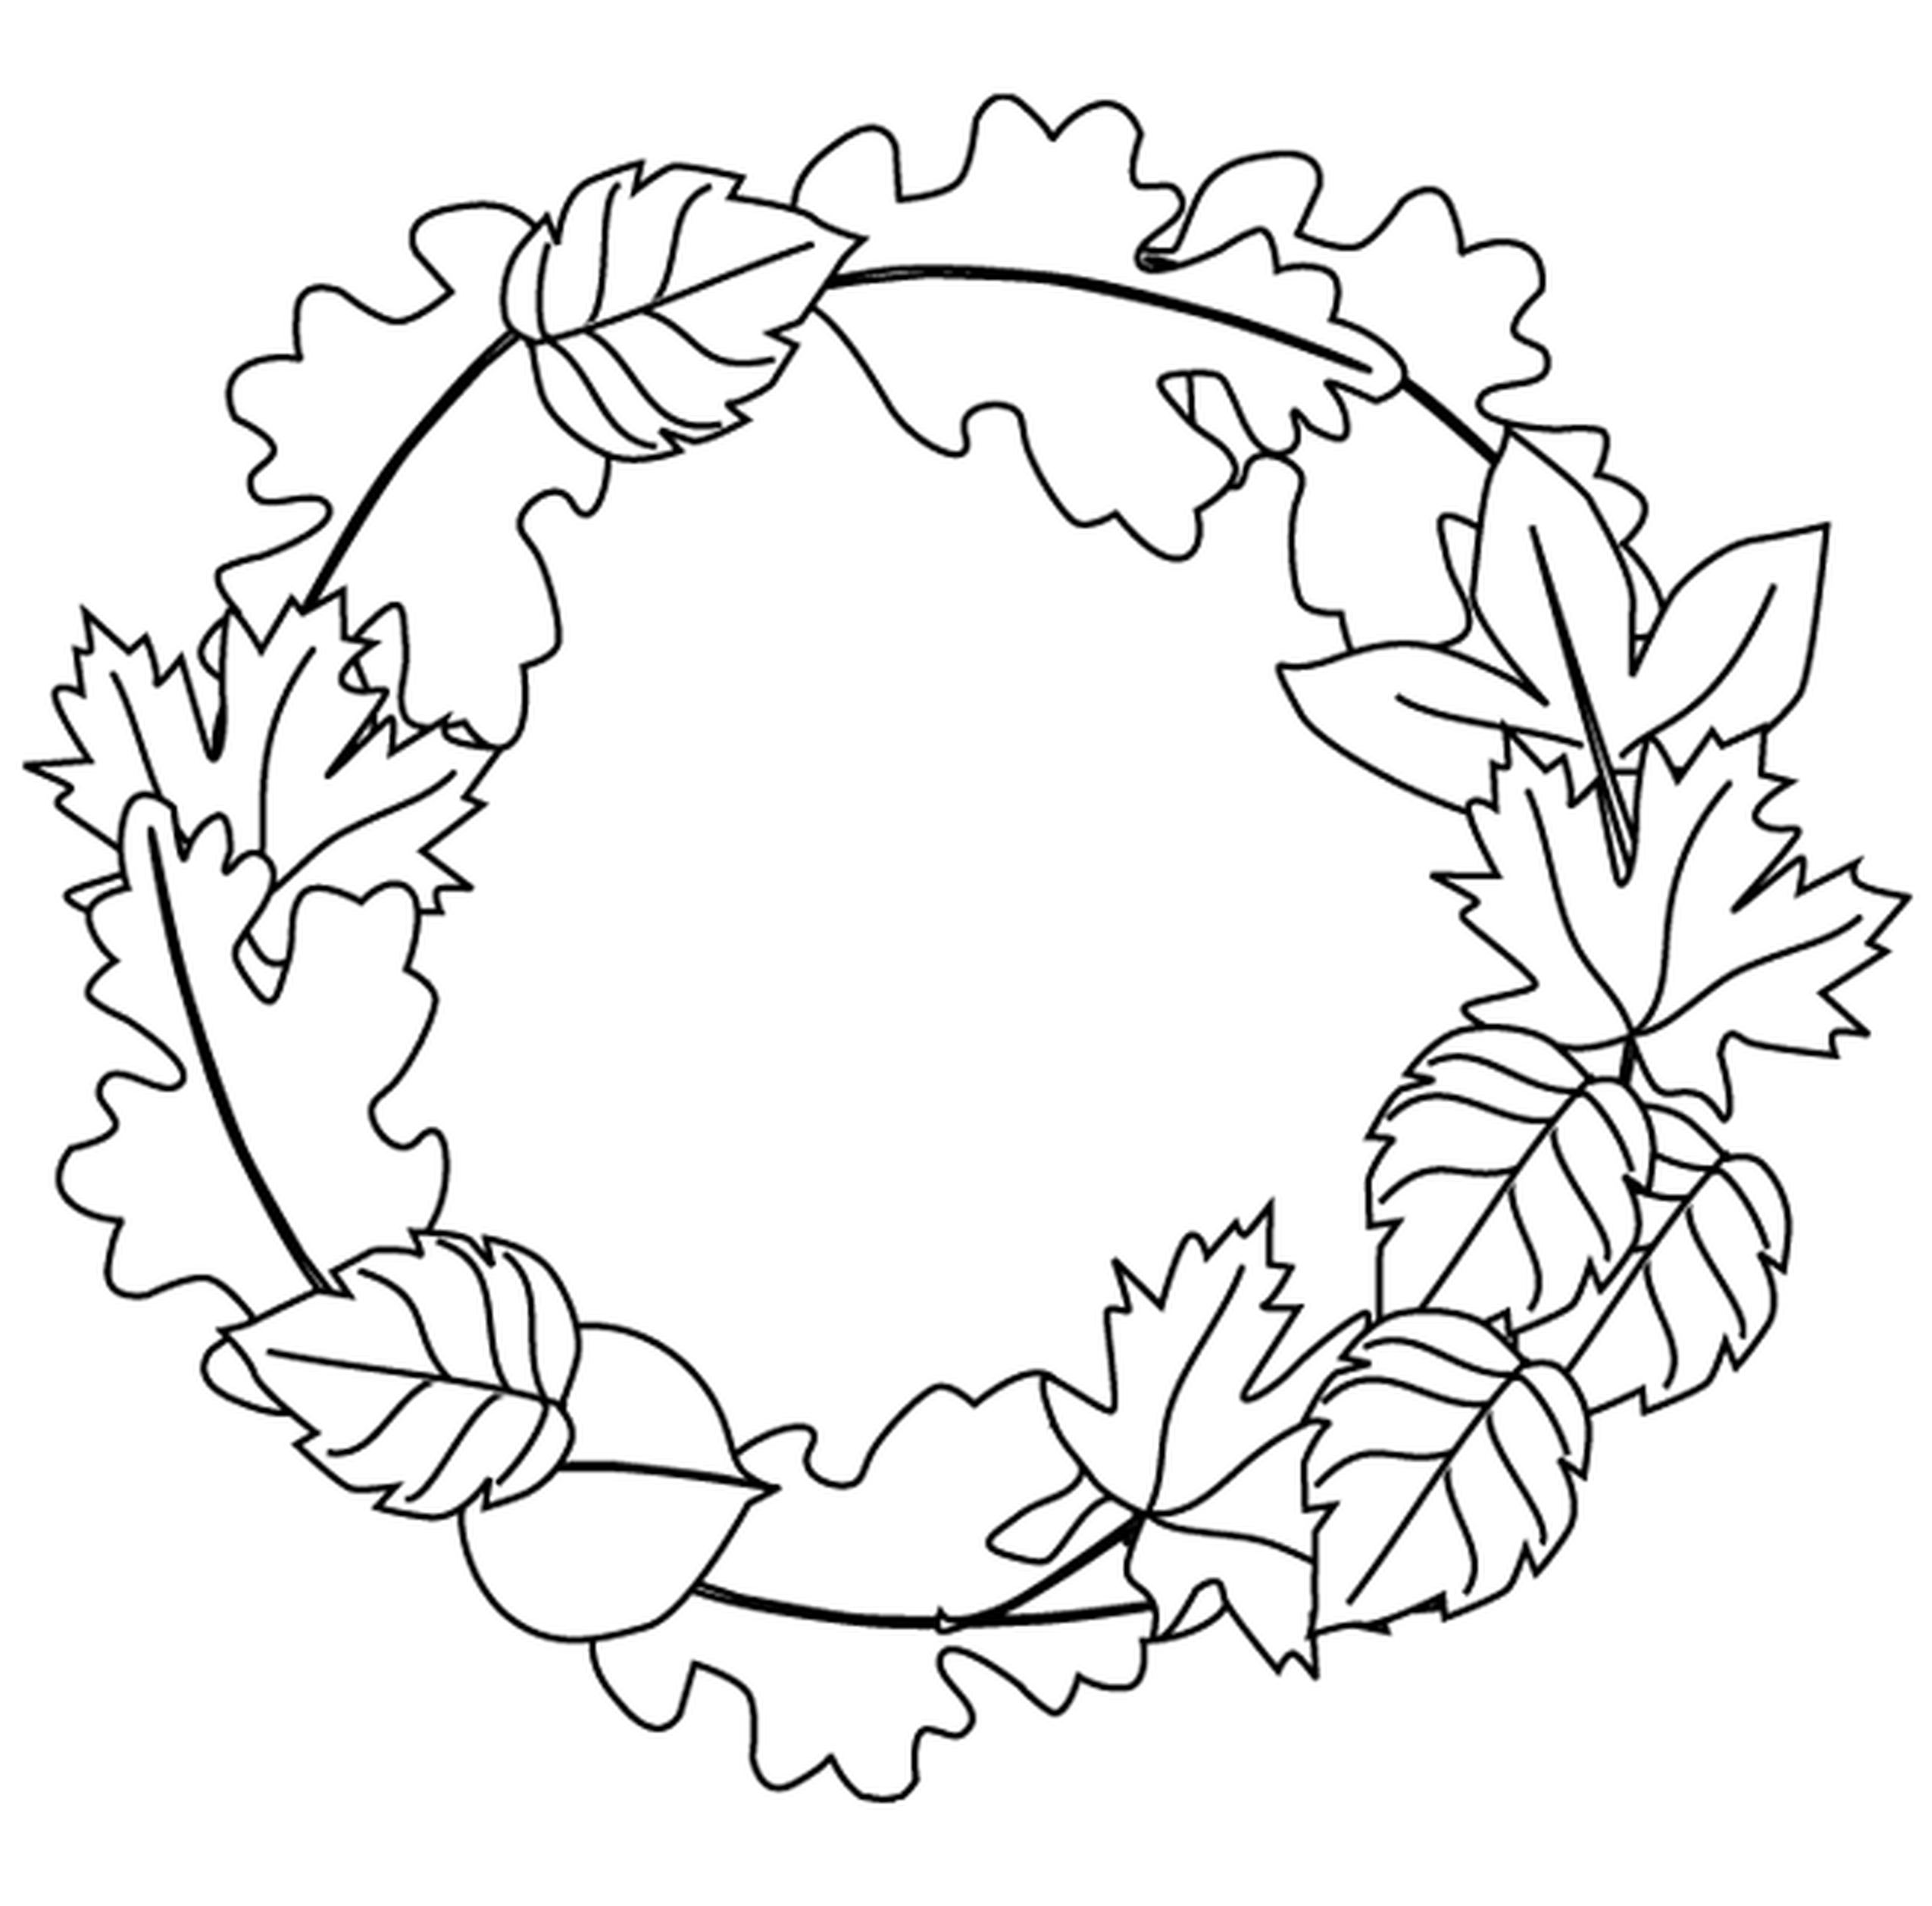 2550x2516 New Fall Leaves Clip Art Coloring Pages Gallery Of Pzjqt Has